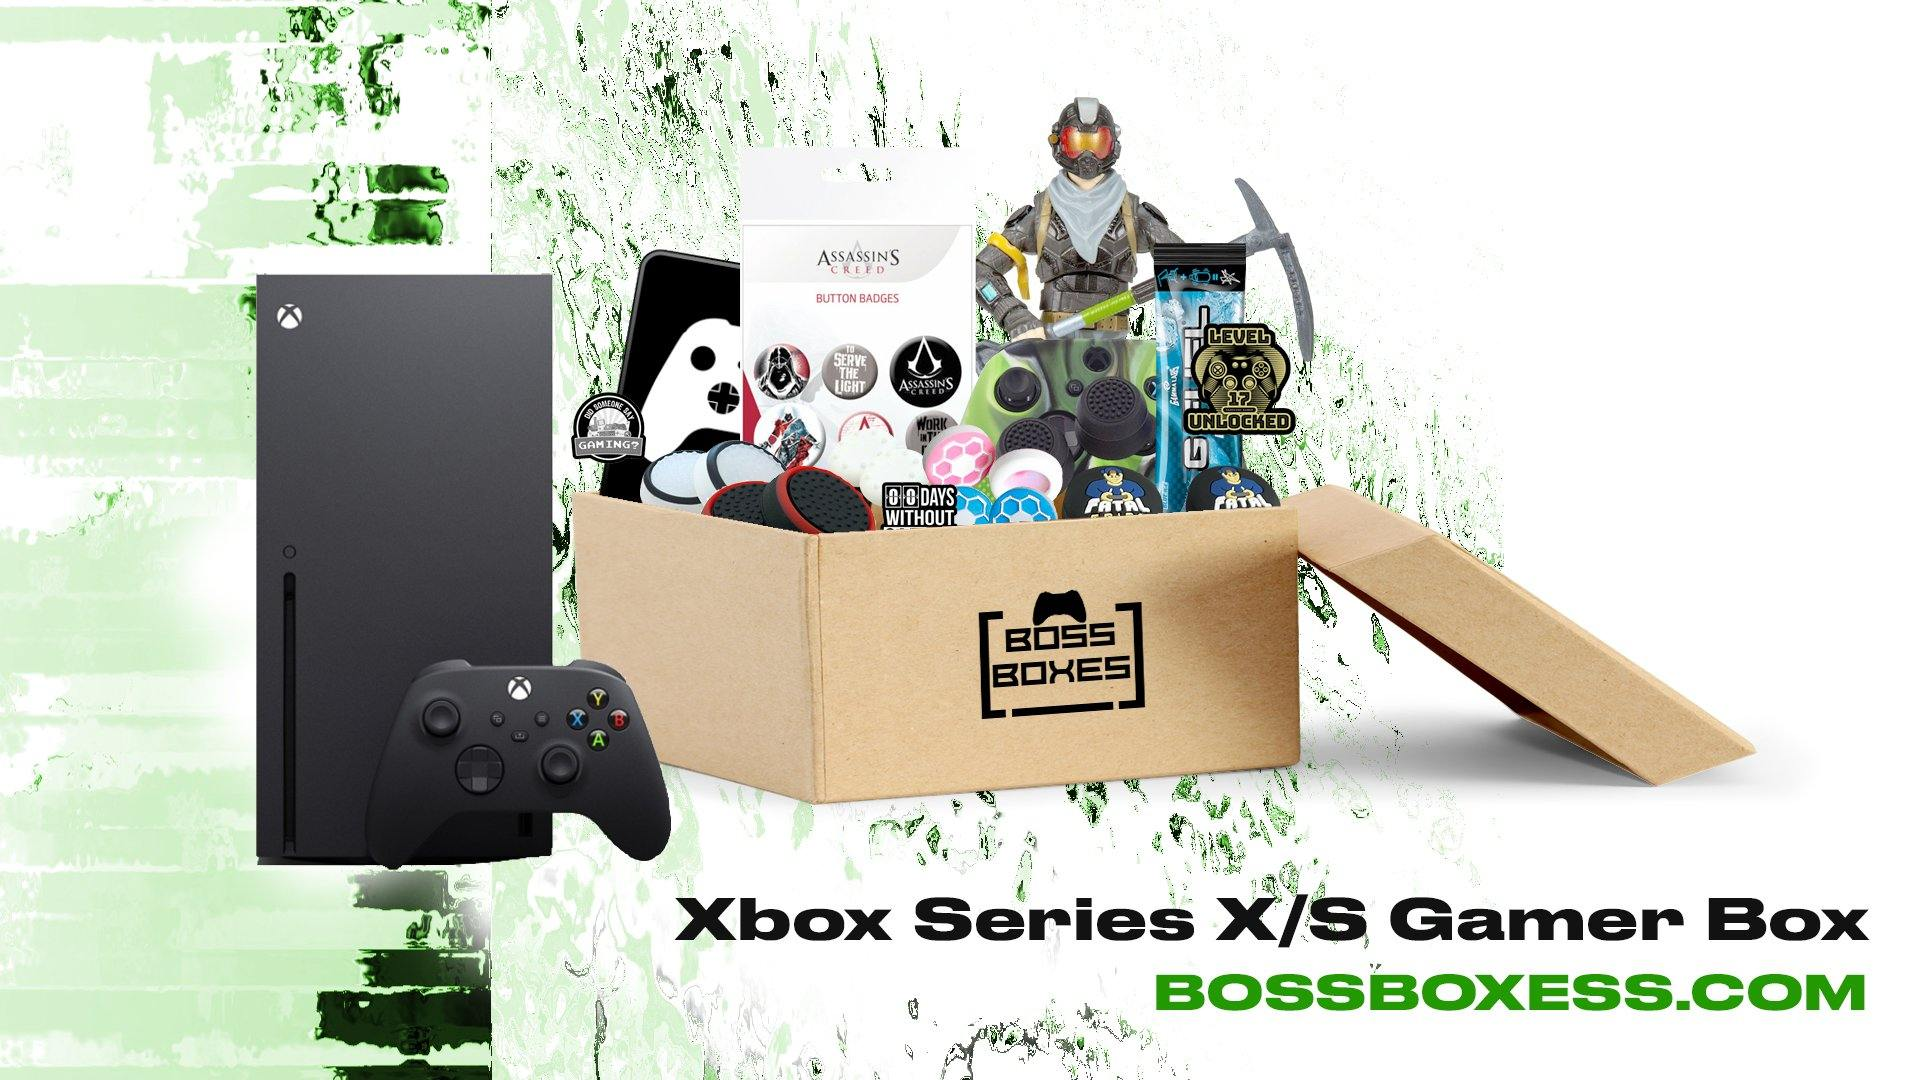 Xbox Series X/S Gamer Box